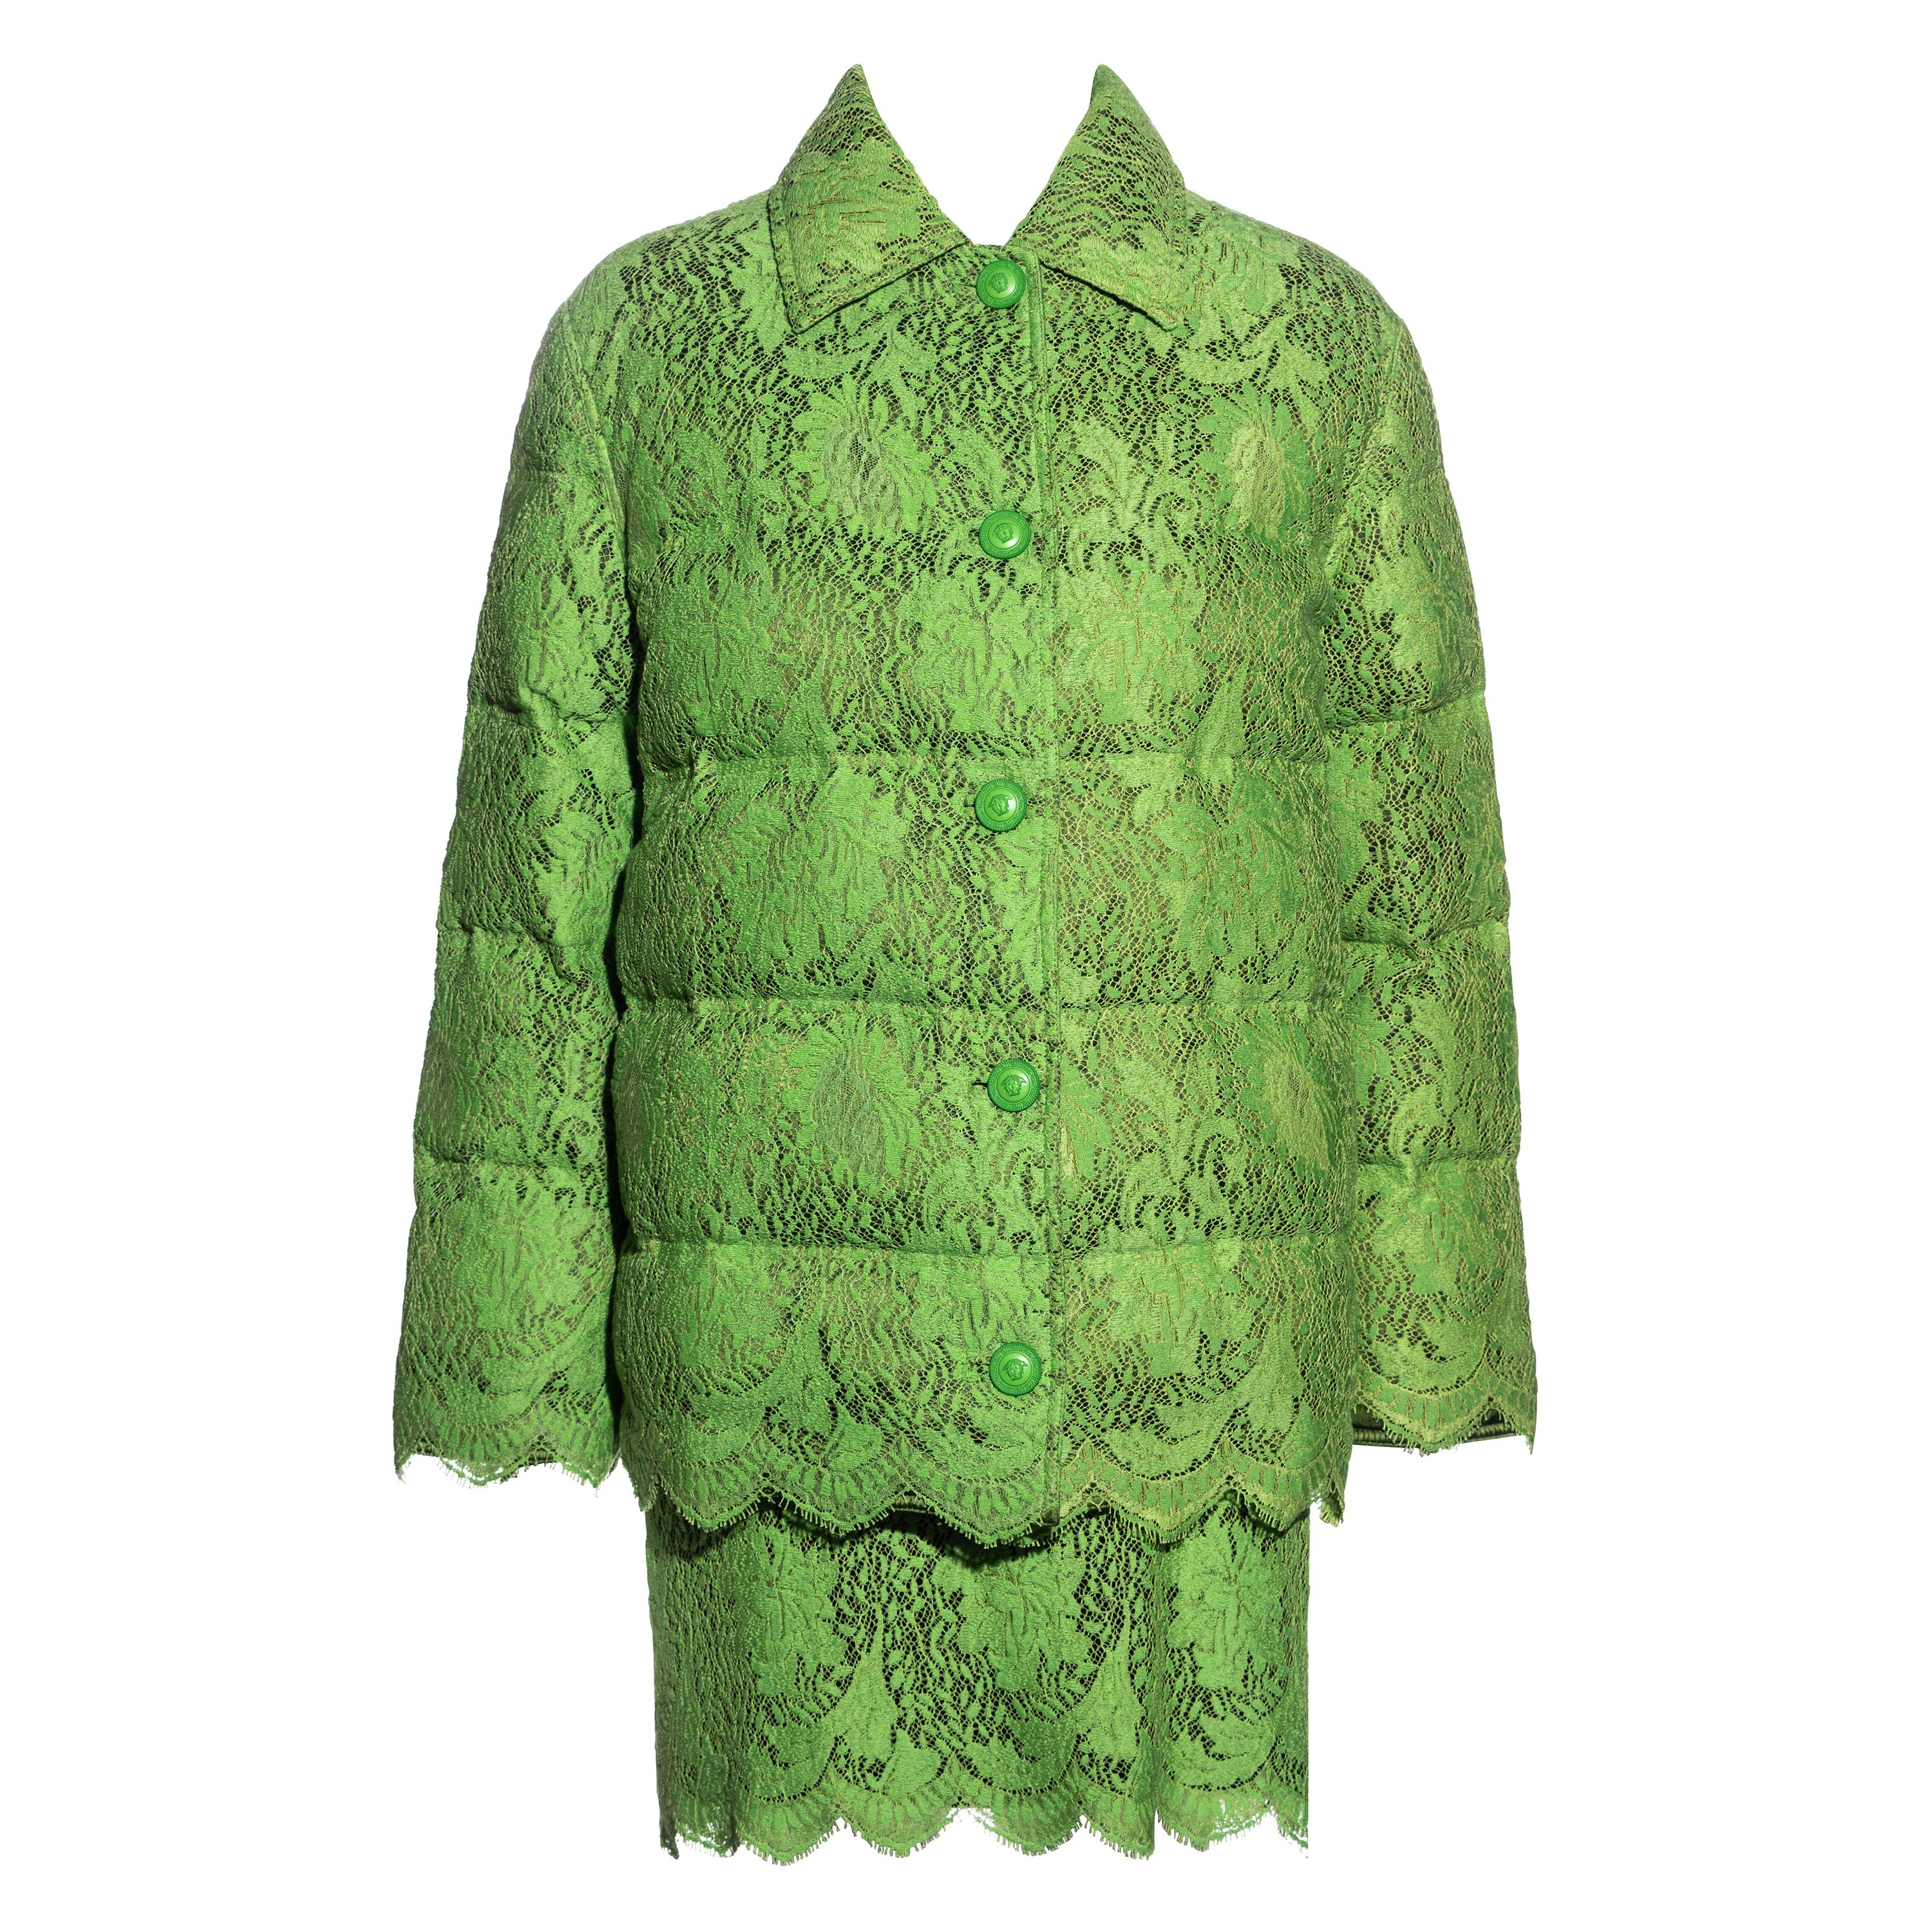 Gianni Versace lime green lace goose down puffer jacket and skirt set, fw 1996